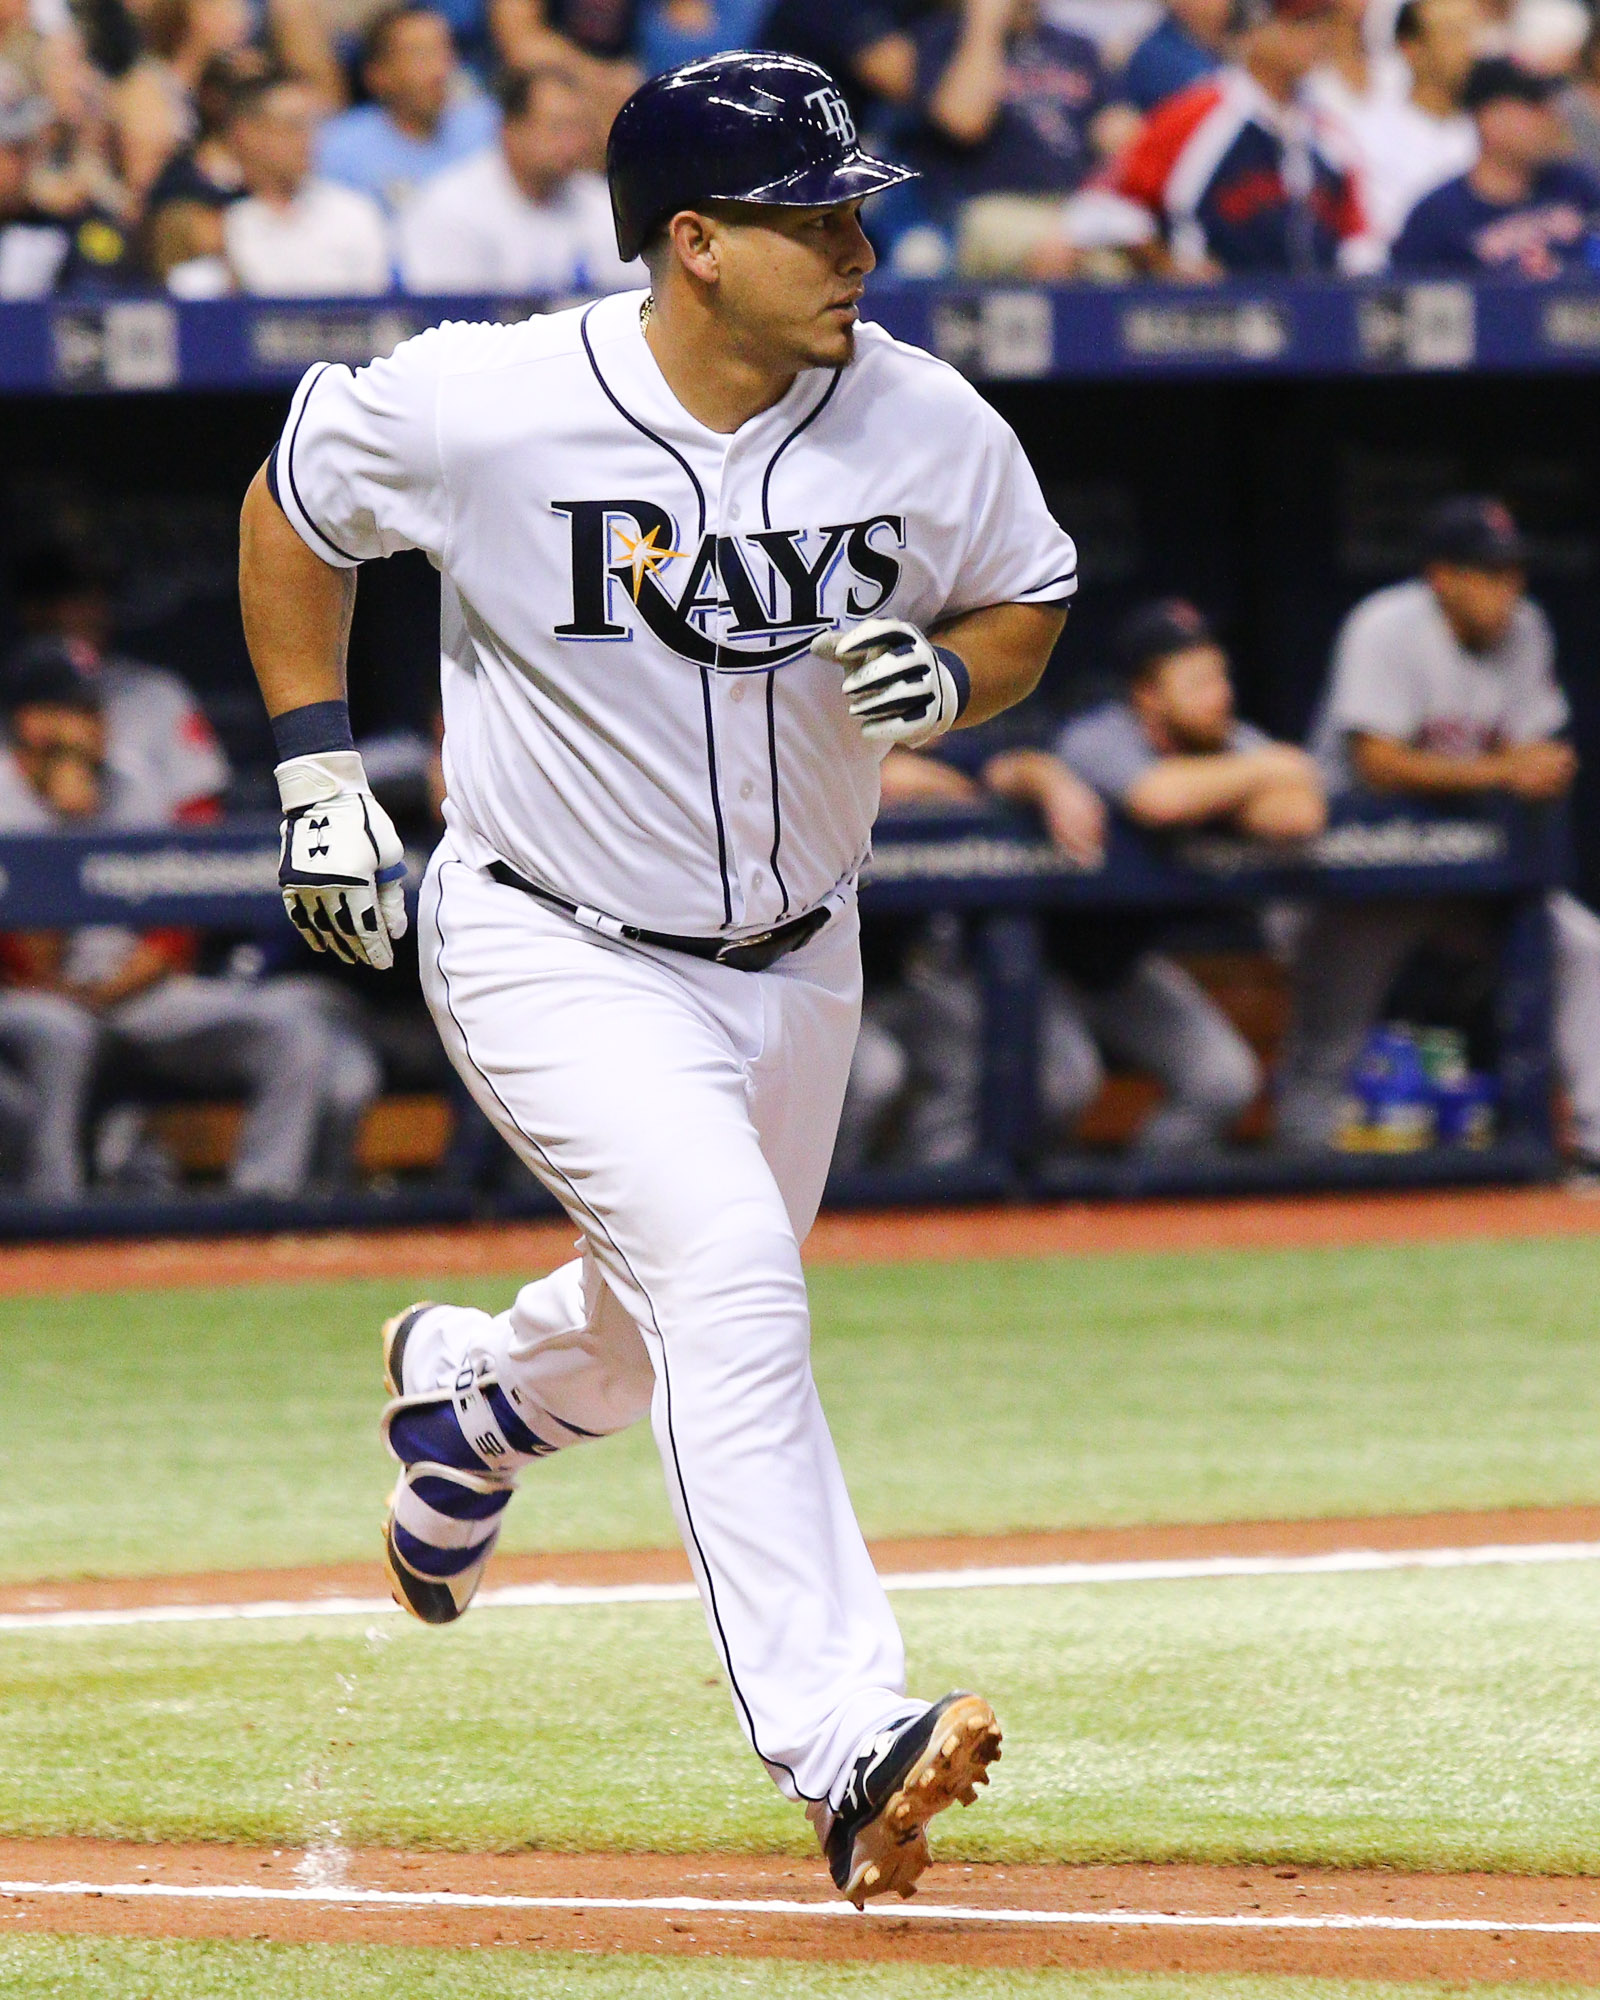 Ramos had one of the Rays' hits./ANDREW J. KRAMER